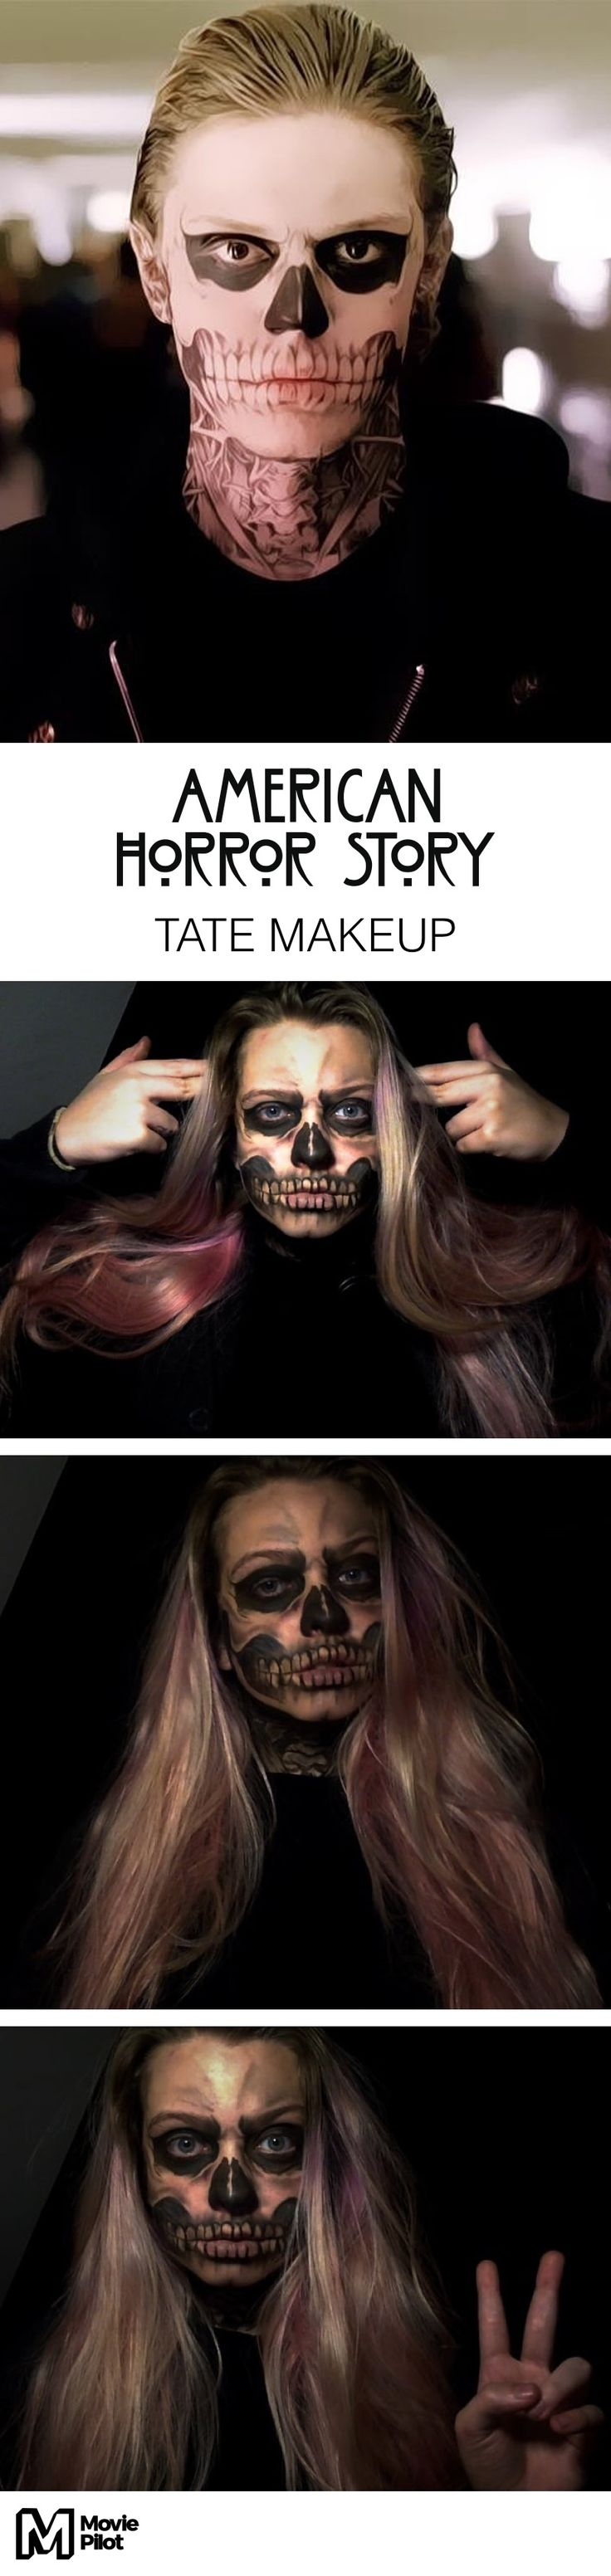 'American Horror Story' Halloween makeup — Tate from Murder House!